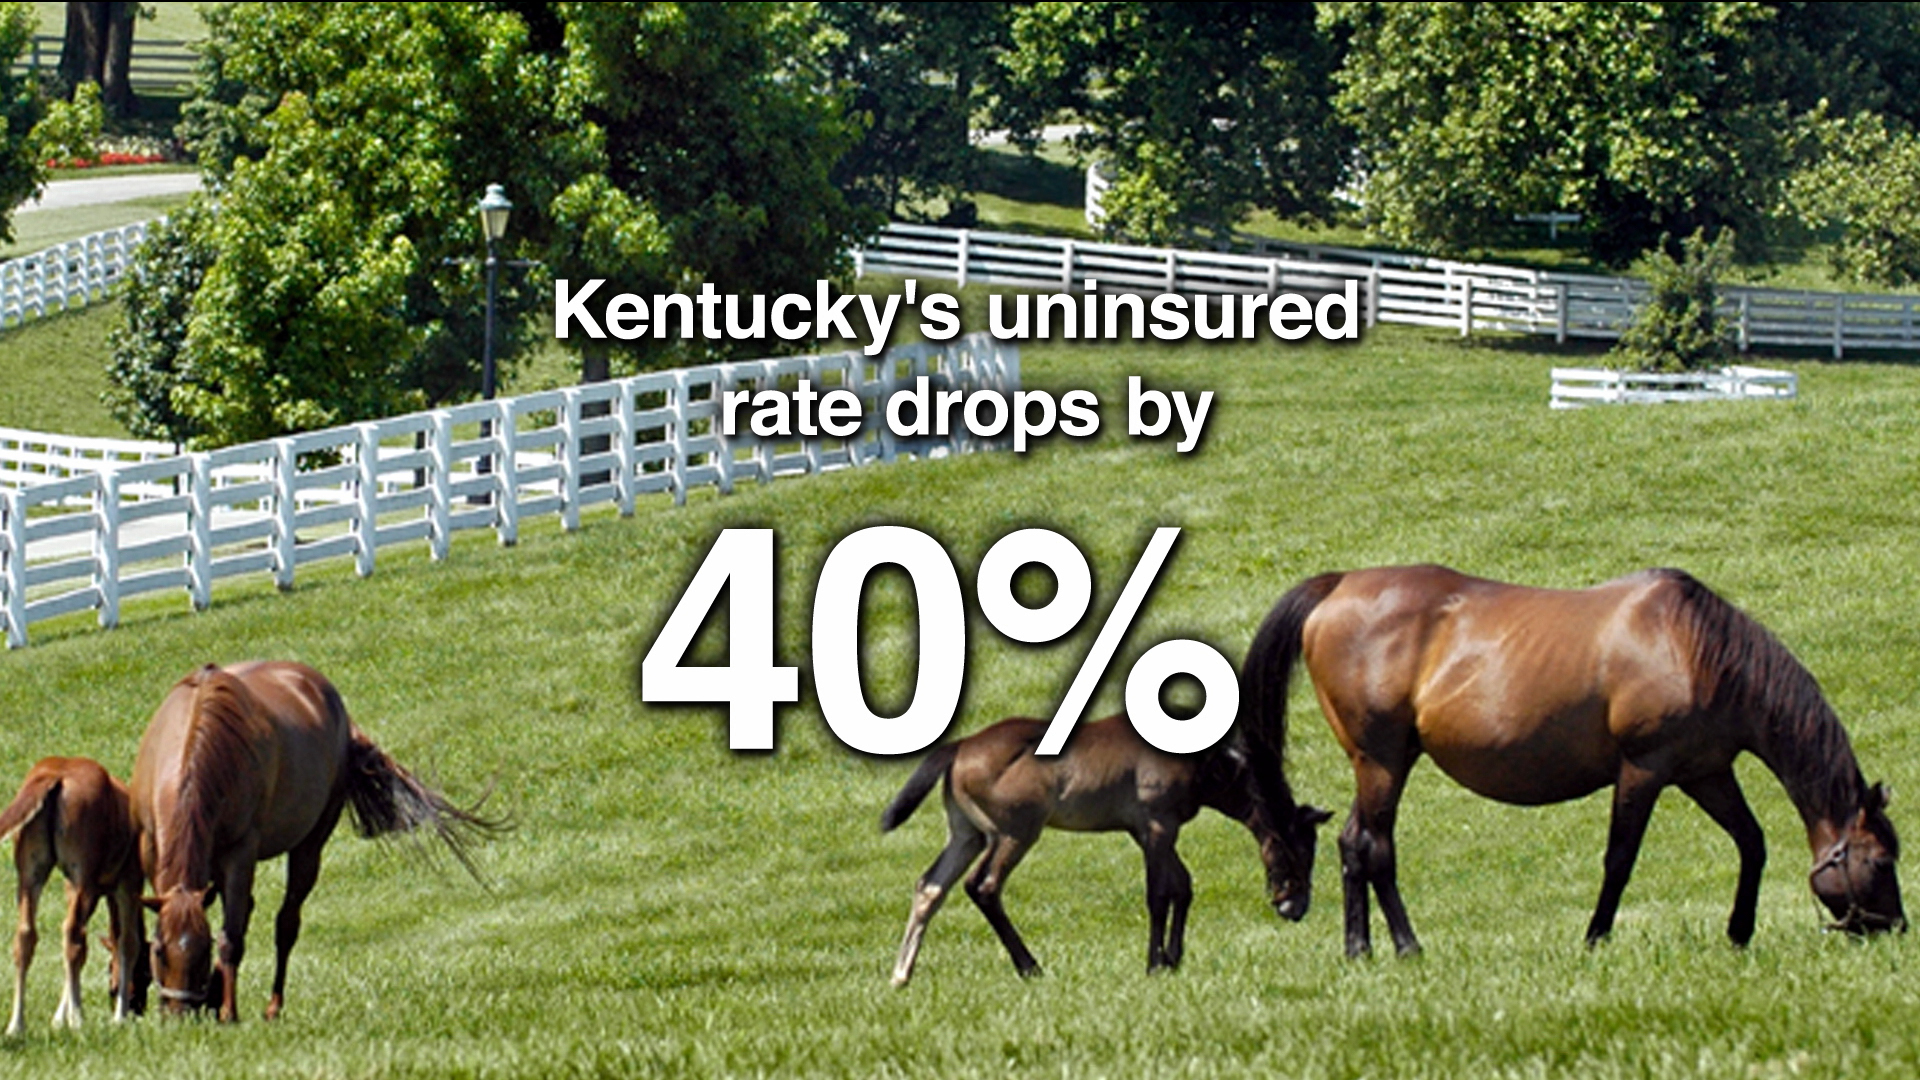 Obamacare a divisive topic in Kentucky